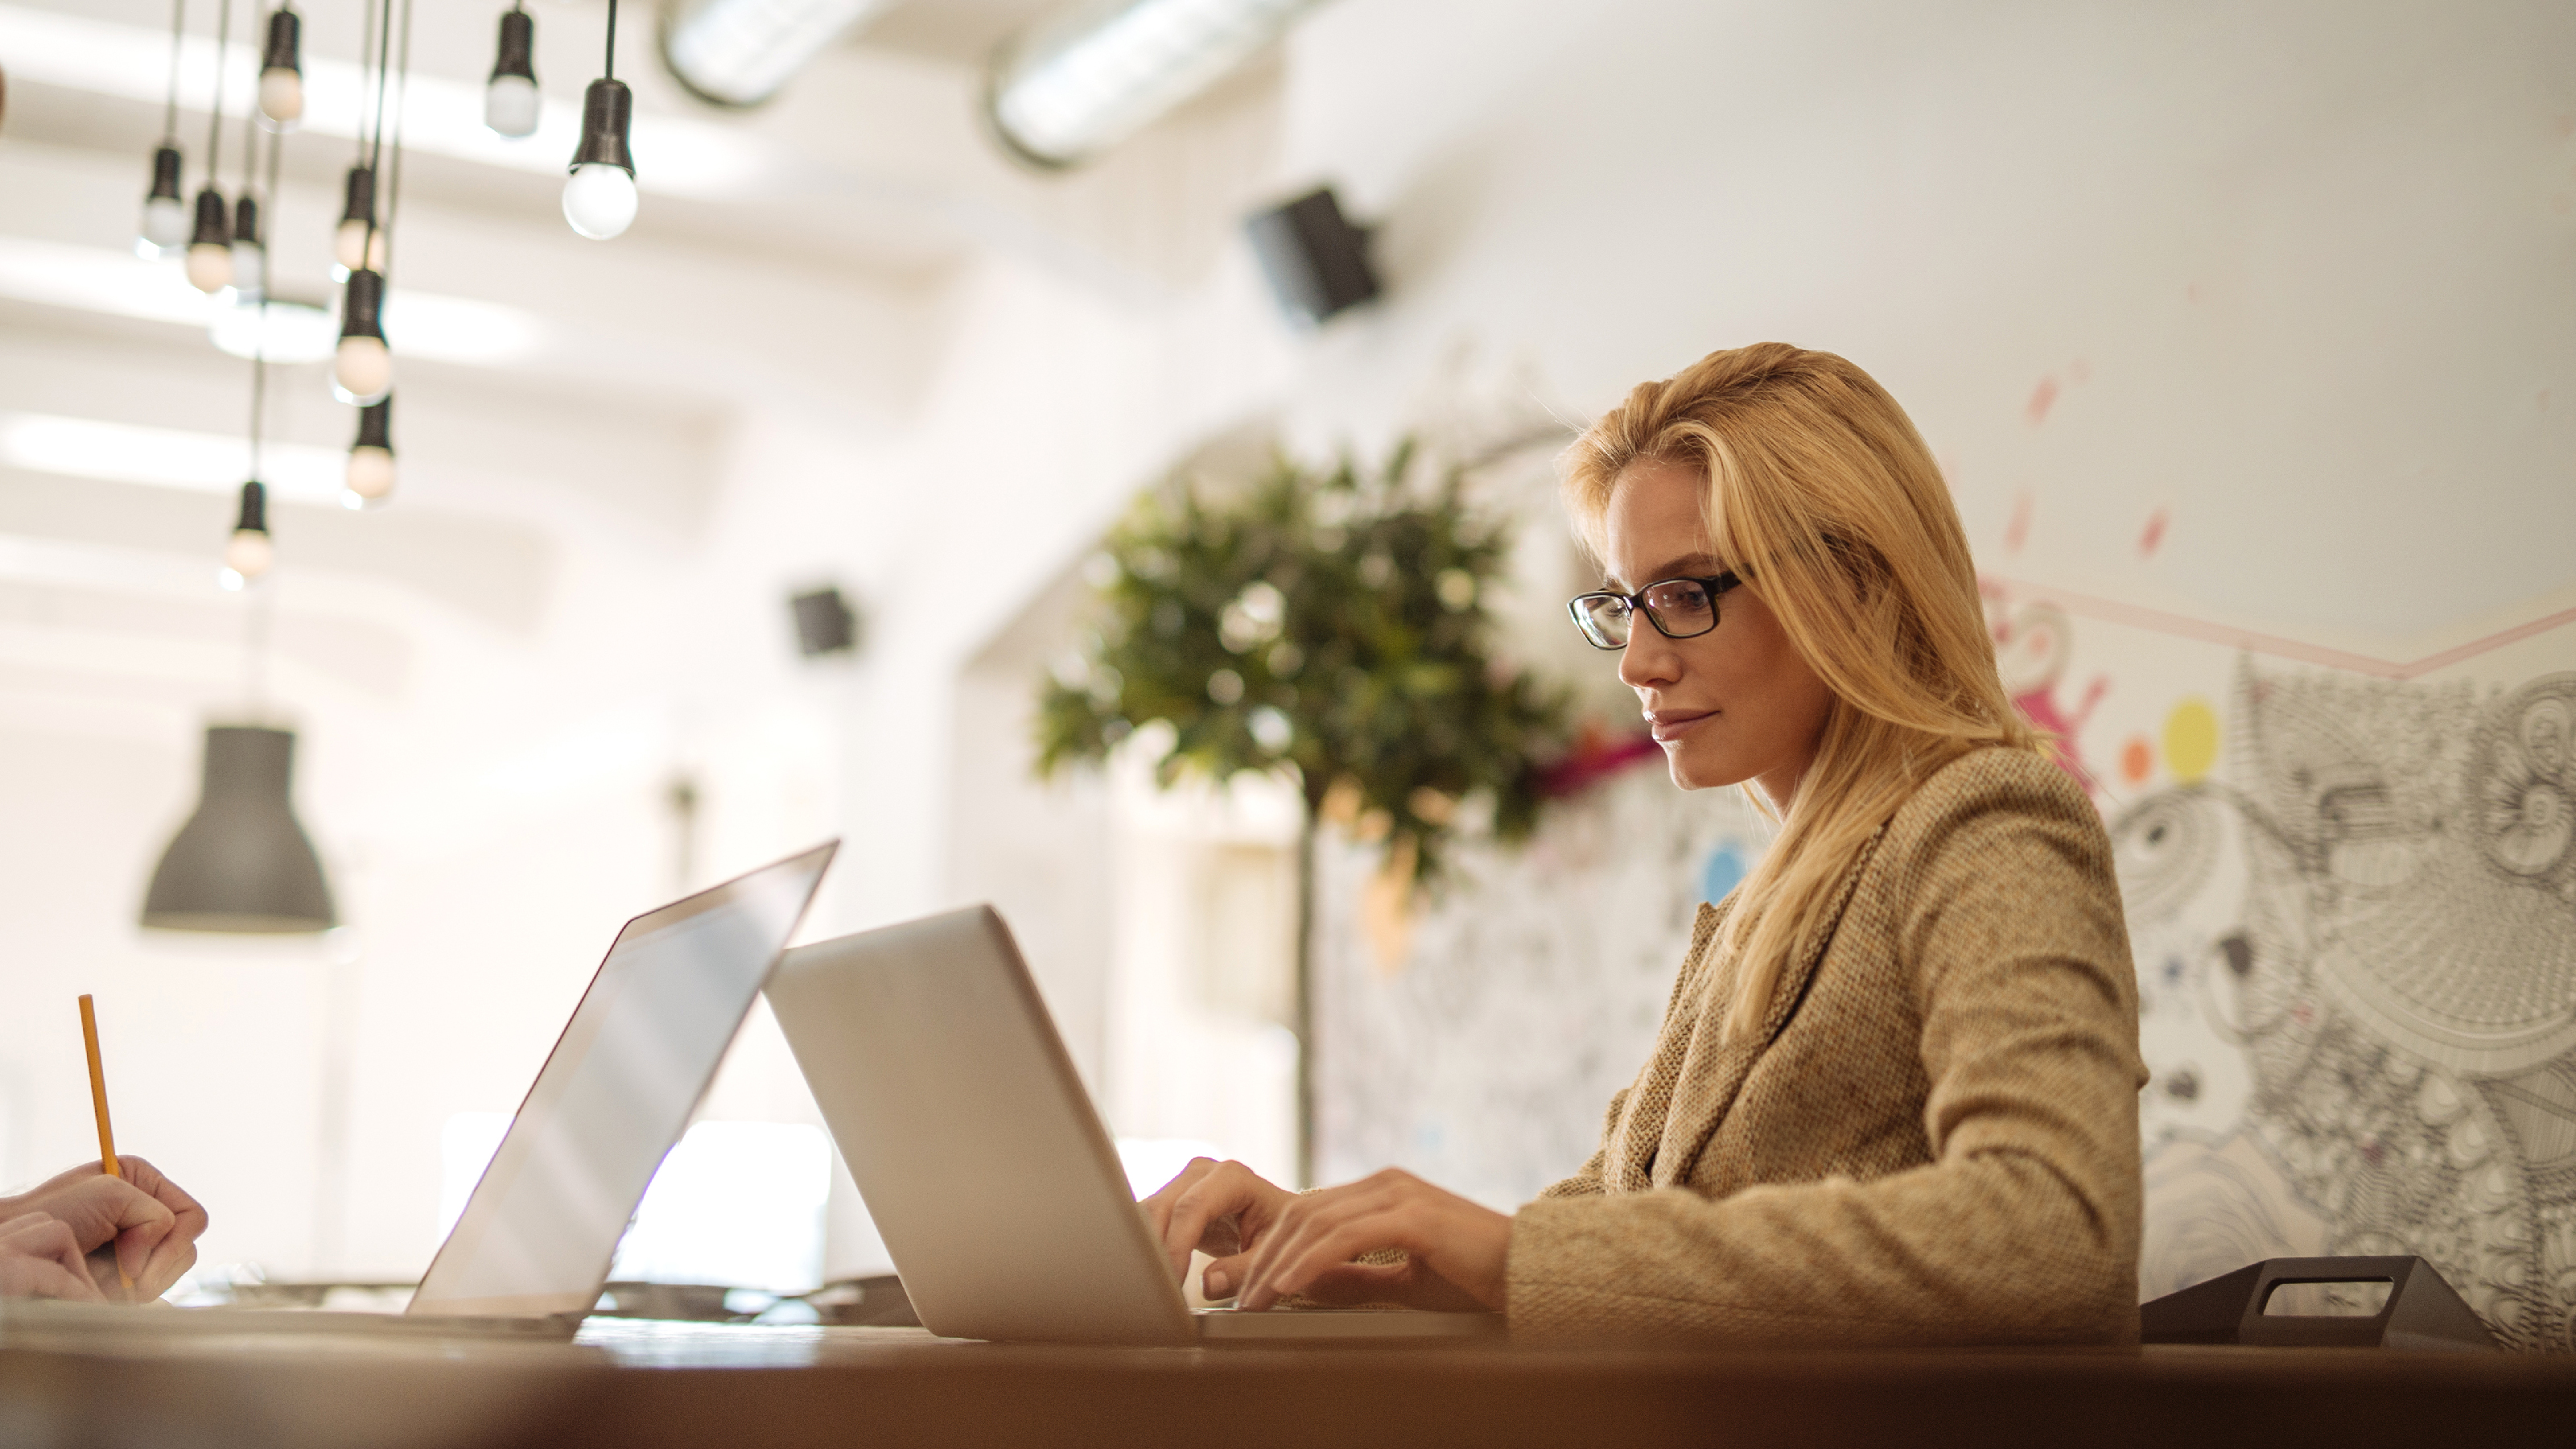 Woman wearing spectacles working on laptop